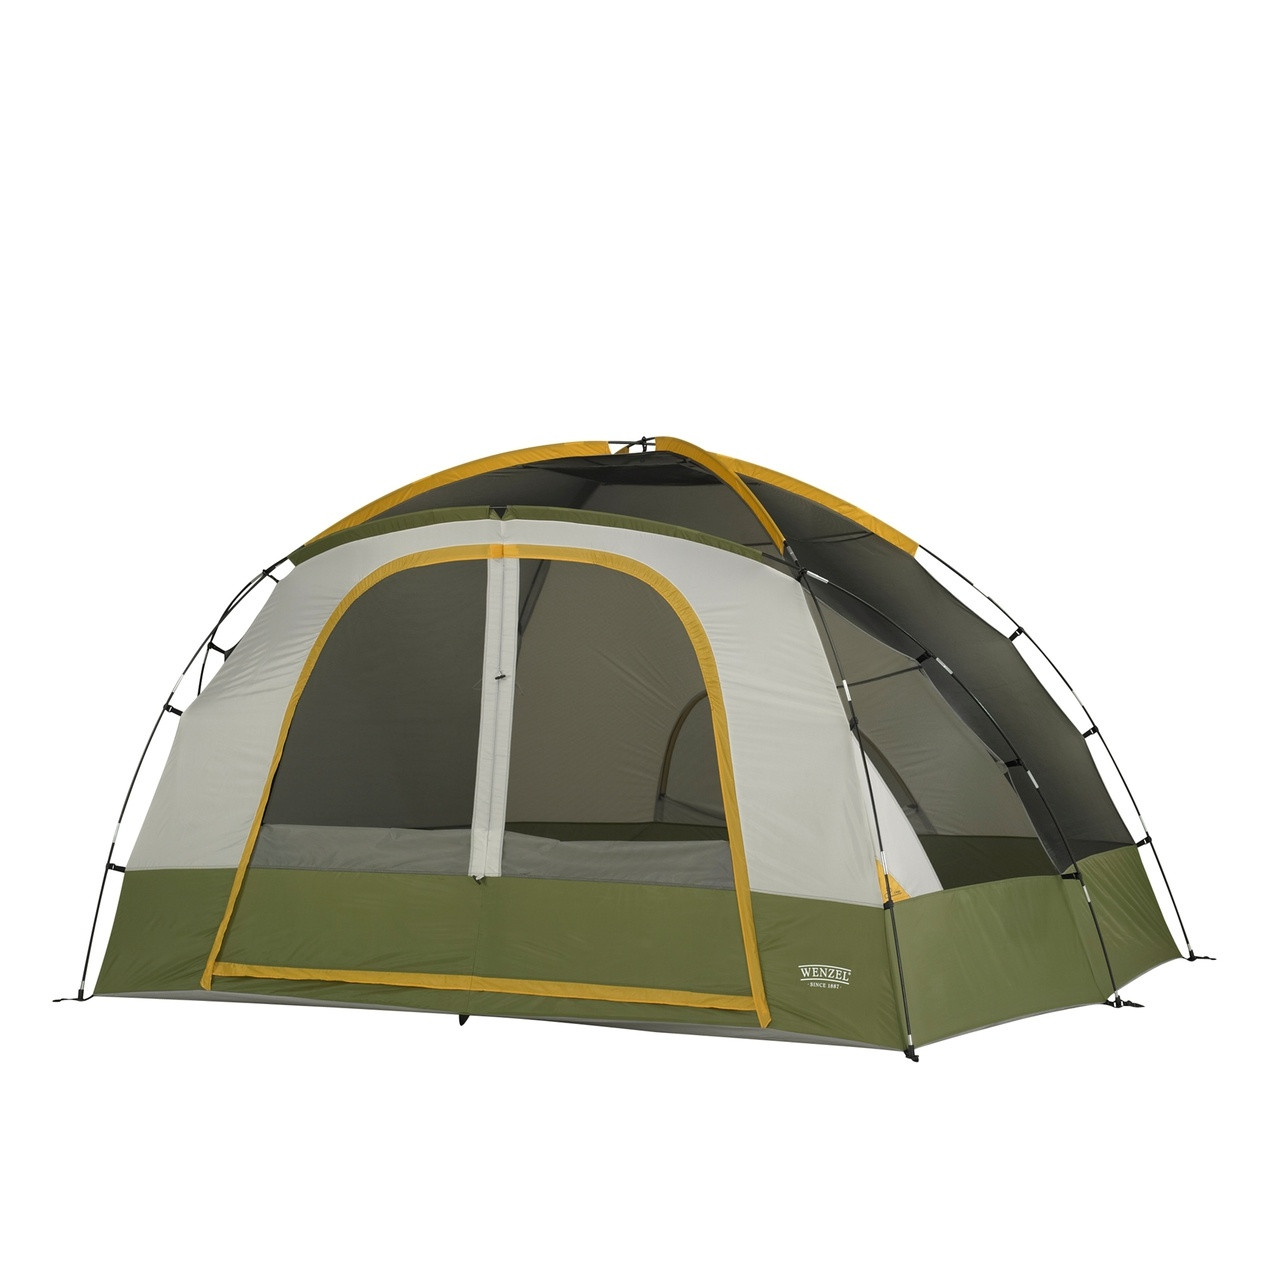 Front view of the Wenzel Evergreen 6 tent setup without the rain fly on